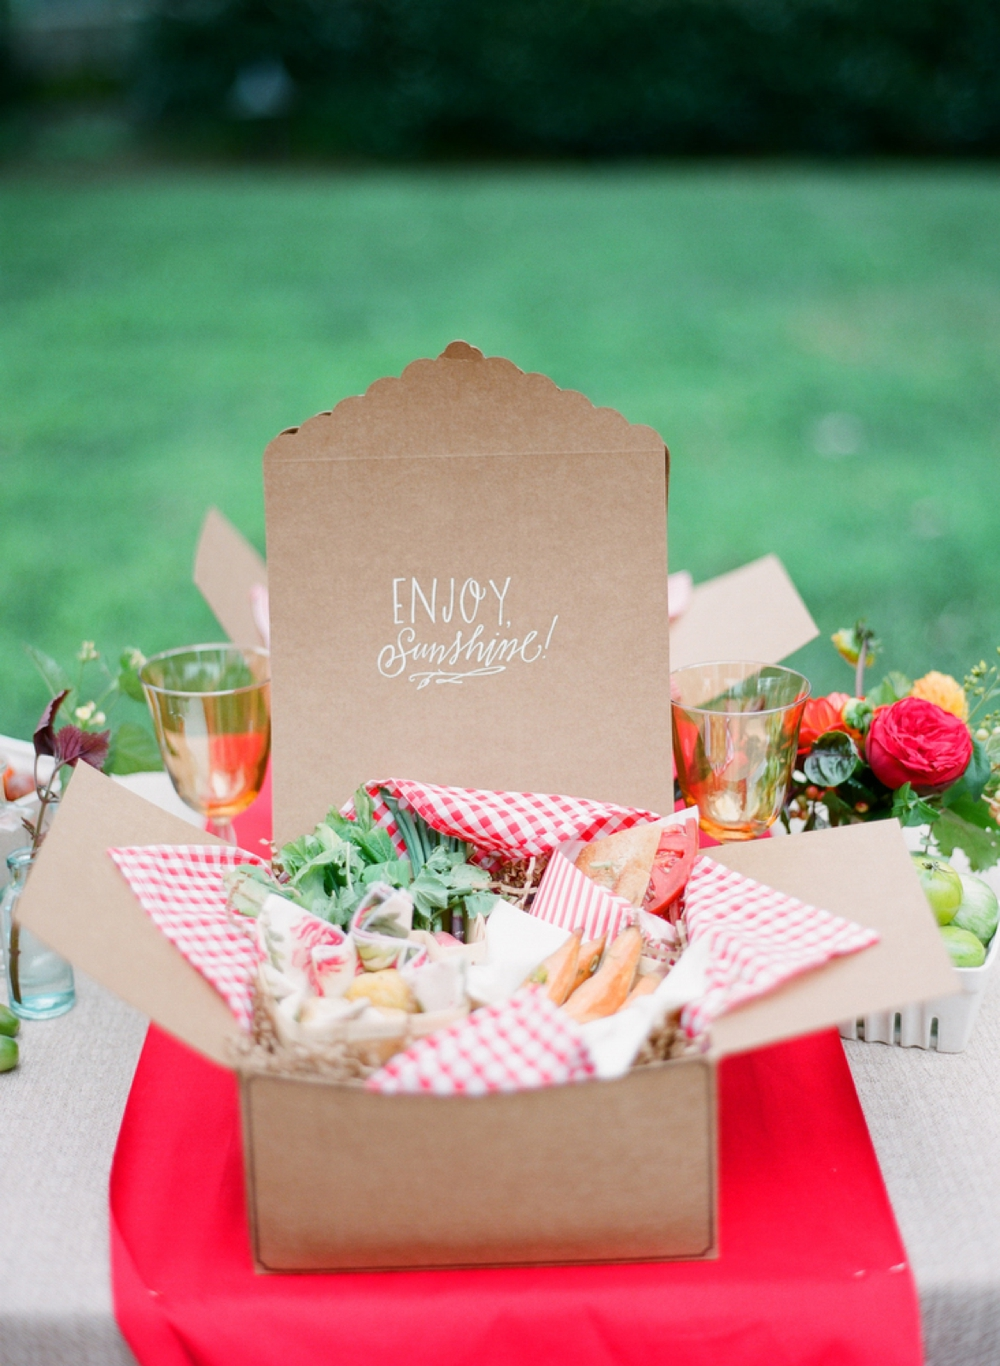 21 spectacular bridal shower themes ultimate bridesmaid - Bridal shower themes ...